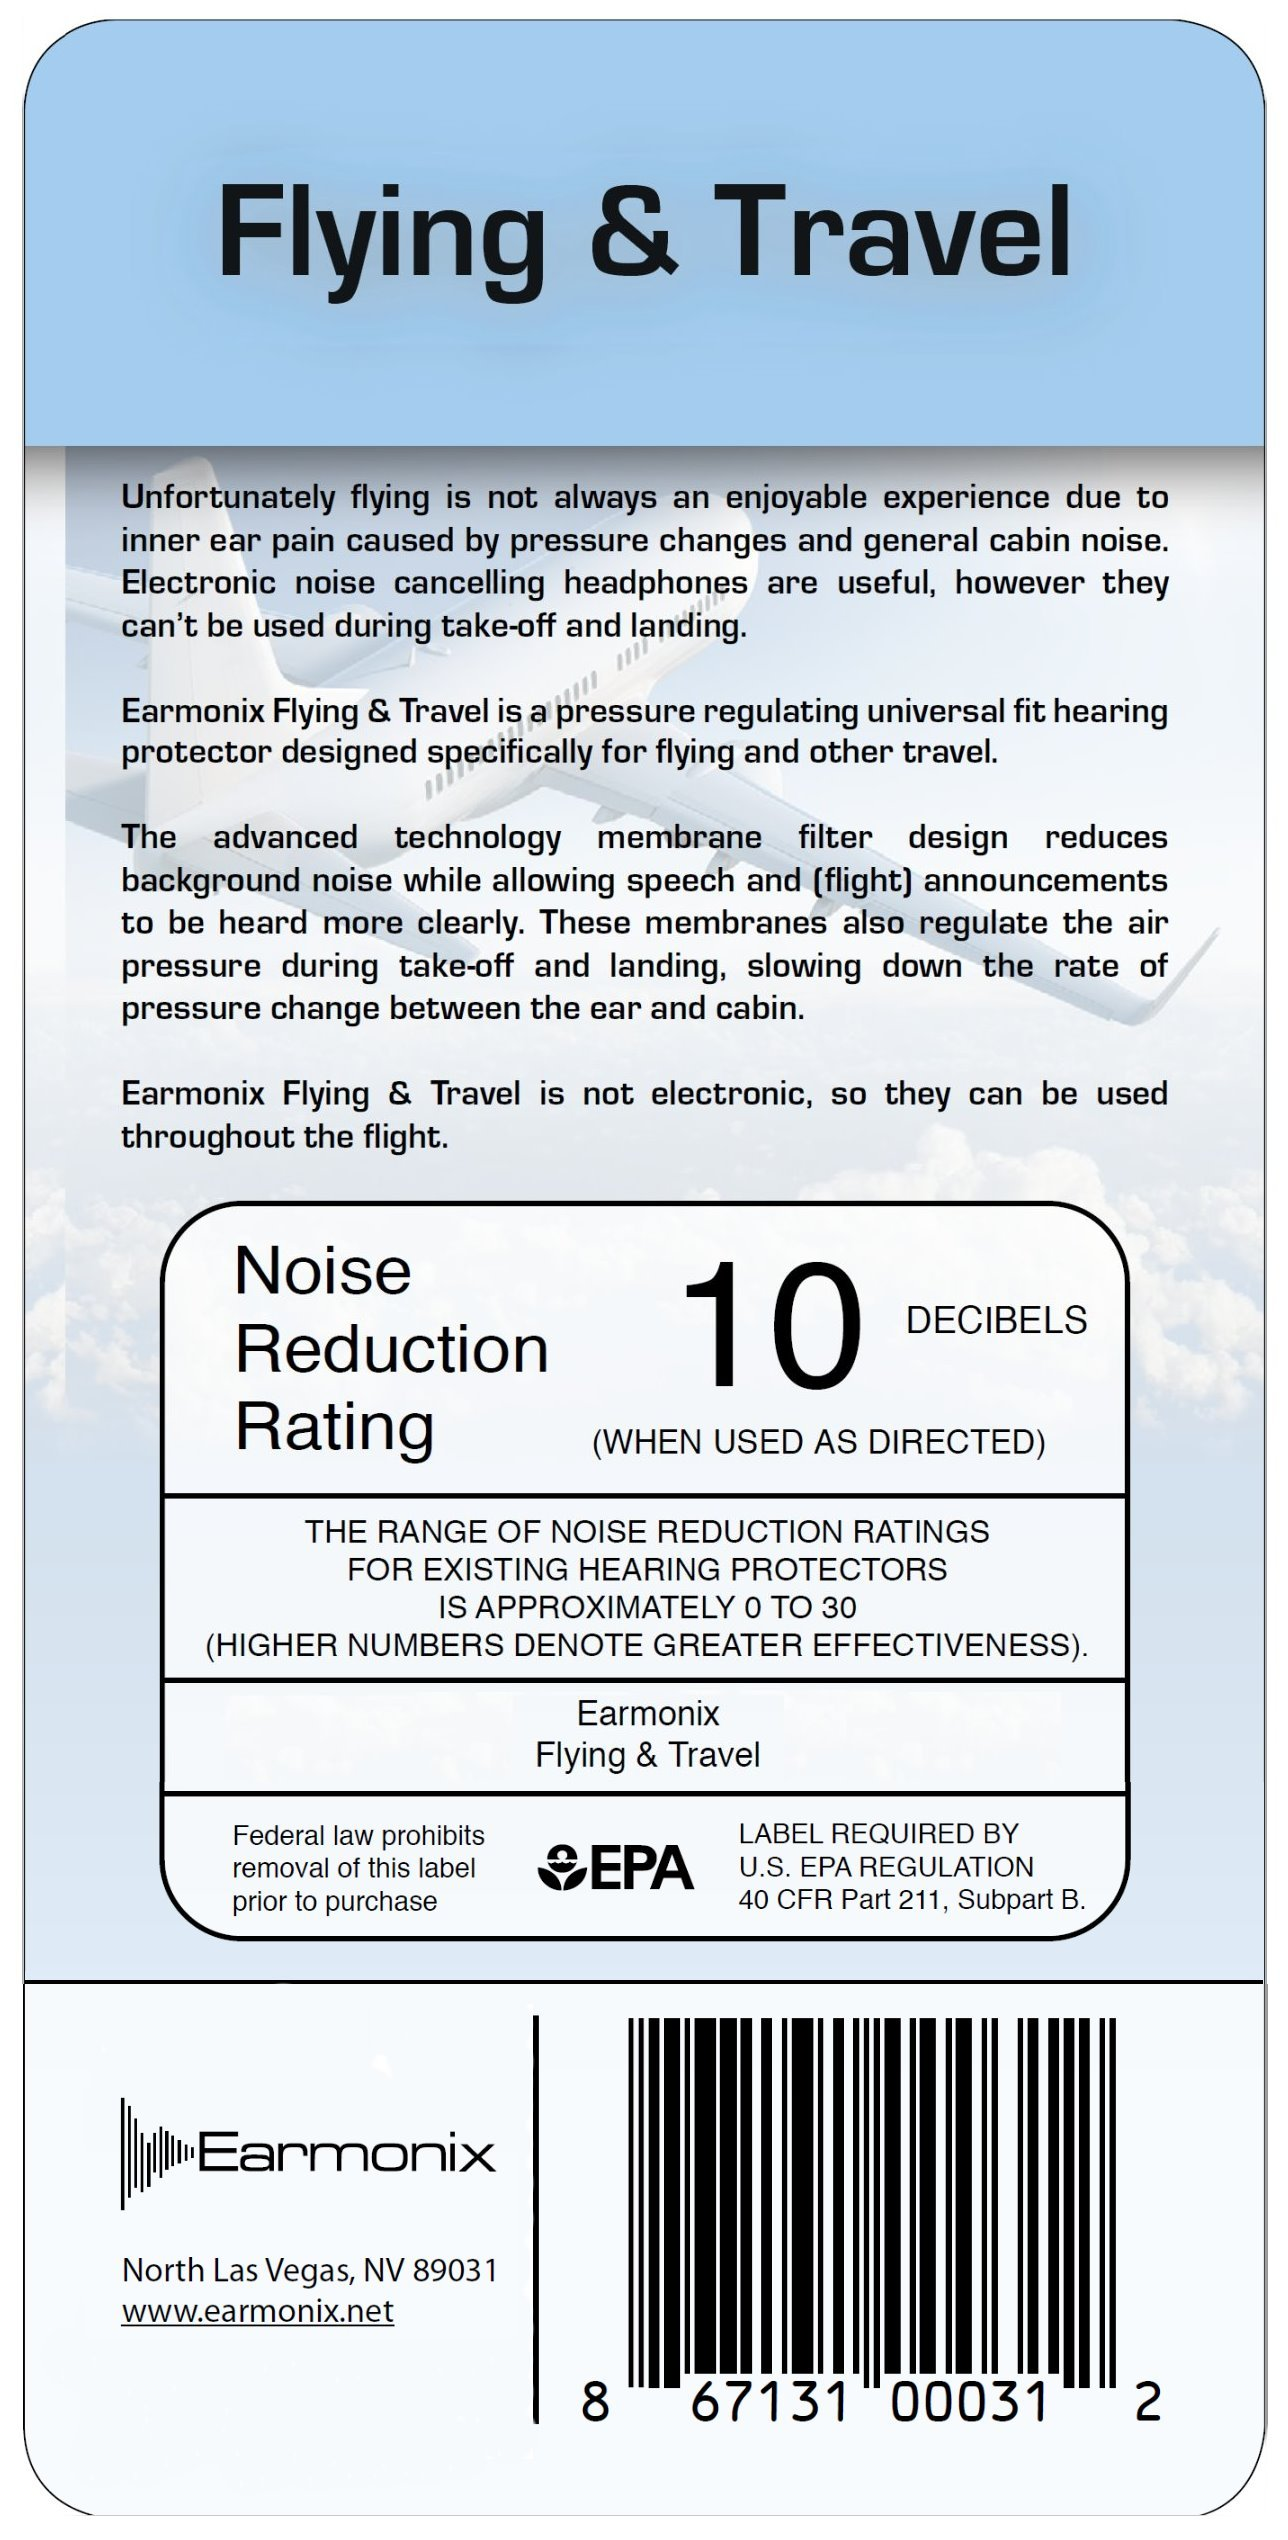 Earmonix Flying & Travel Ear Plugs – Noise Reduction Earplugs for Airplanes, Buses, Driving – Reduces Air Pressure Changes, Road and Background Noise - Reusable Easy to Clean and Carry by Earmonix (Image #3)